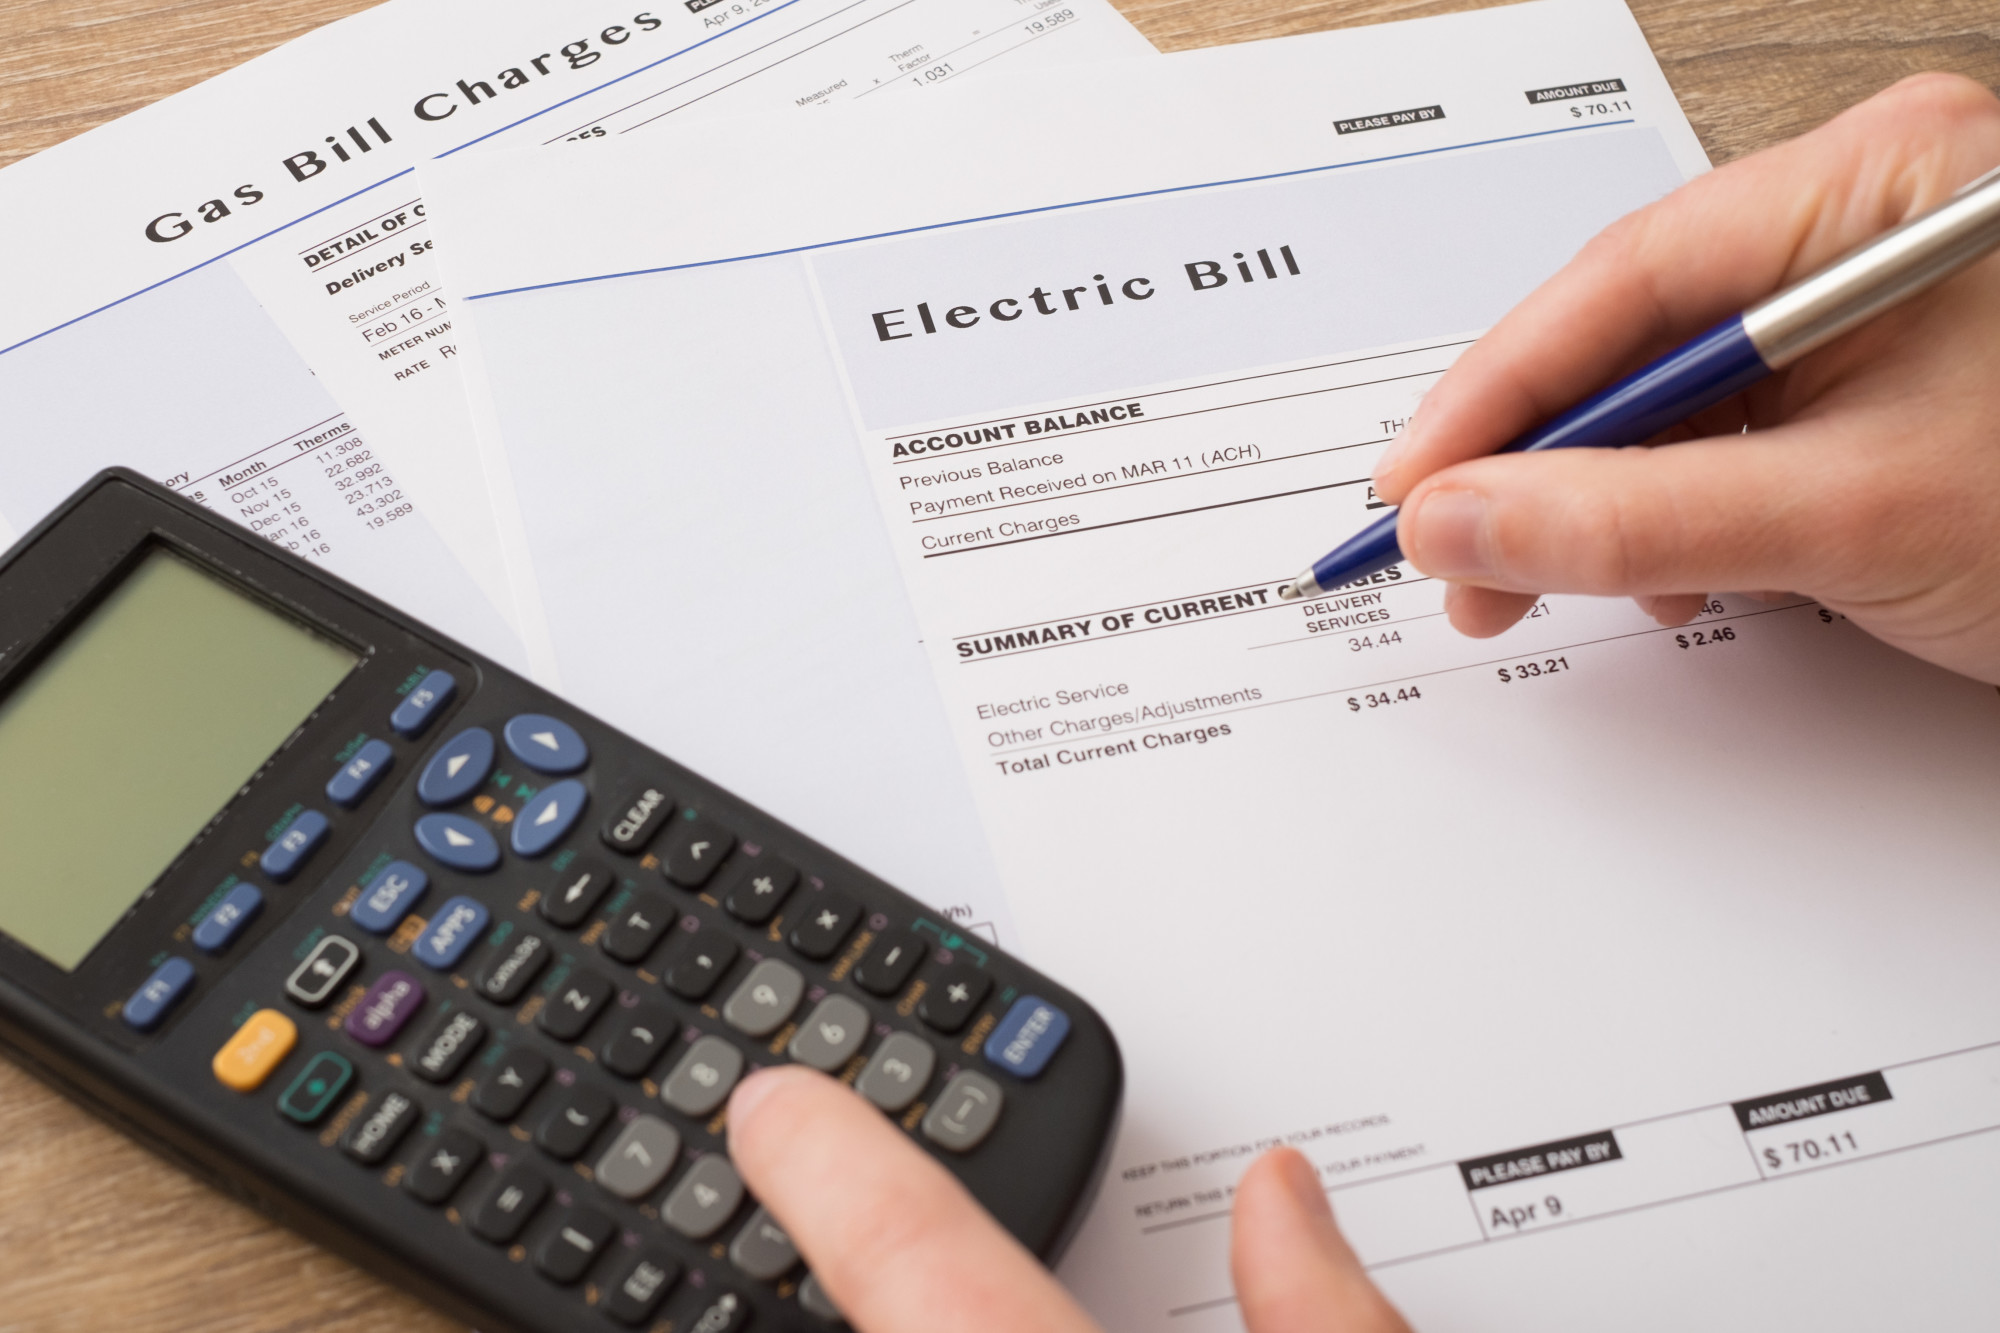 5 Eco-Friendly Tips That'll Help You Save on Your Electric Bill